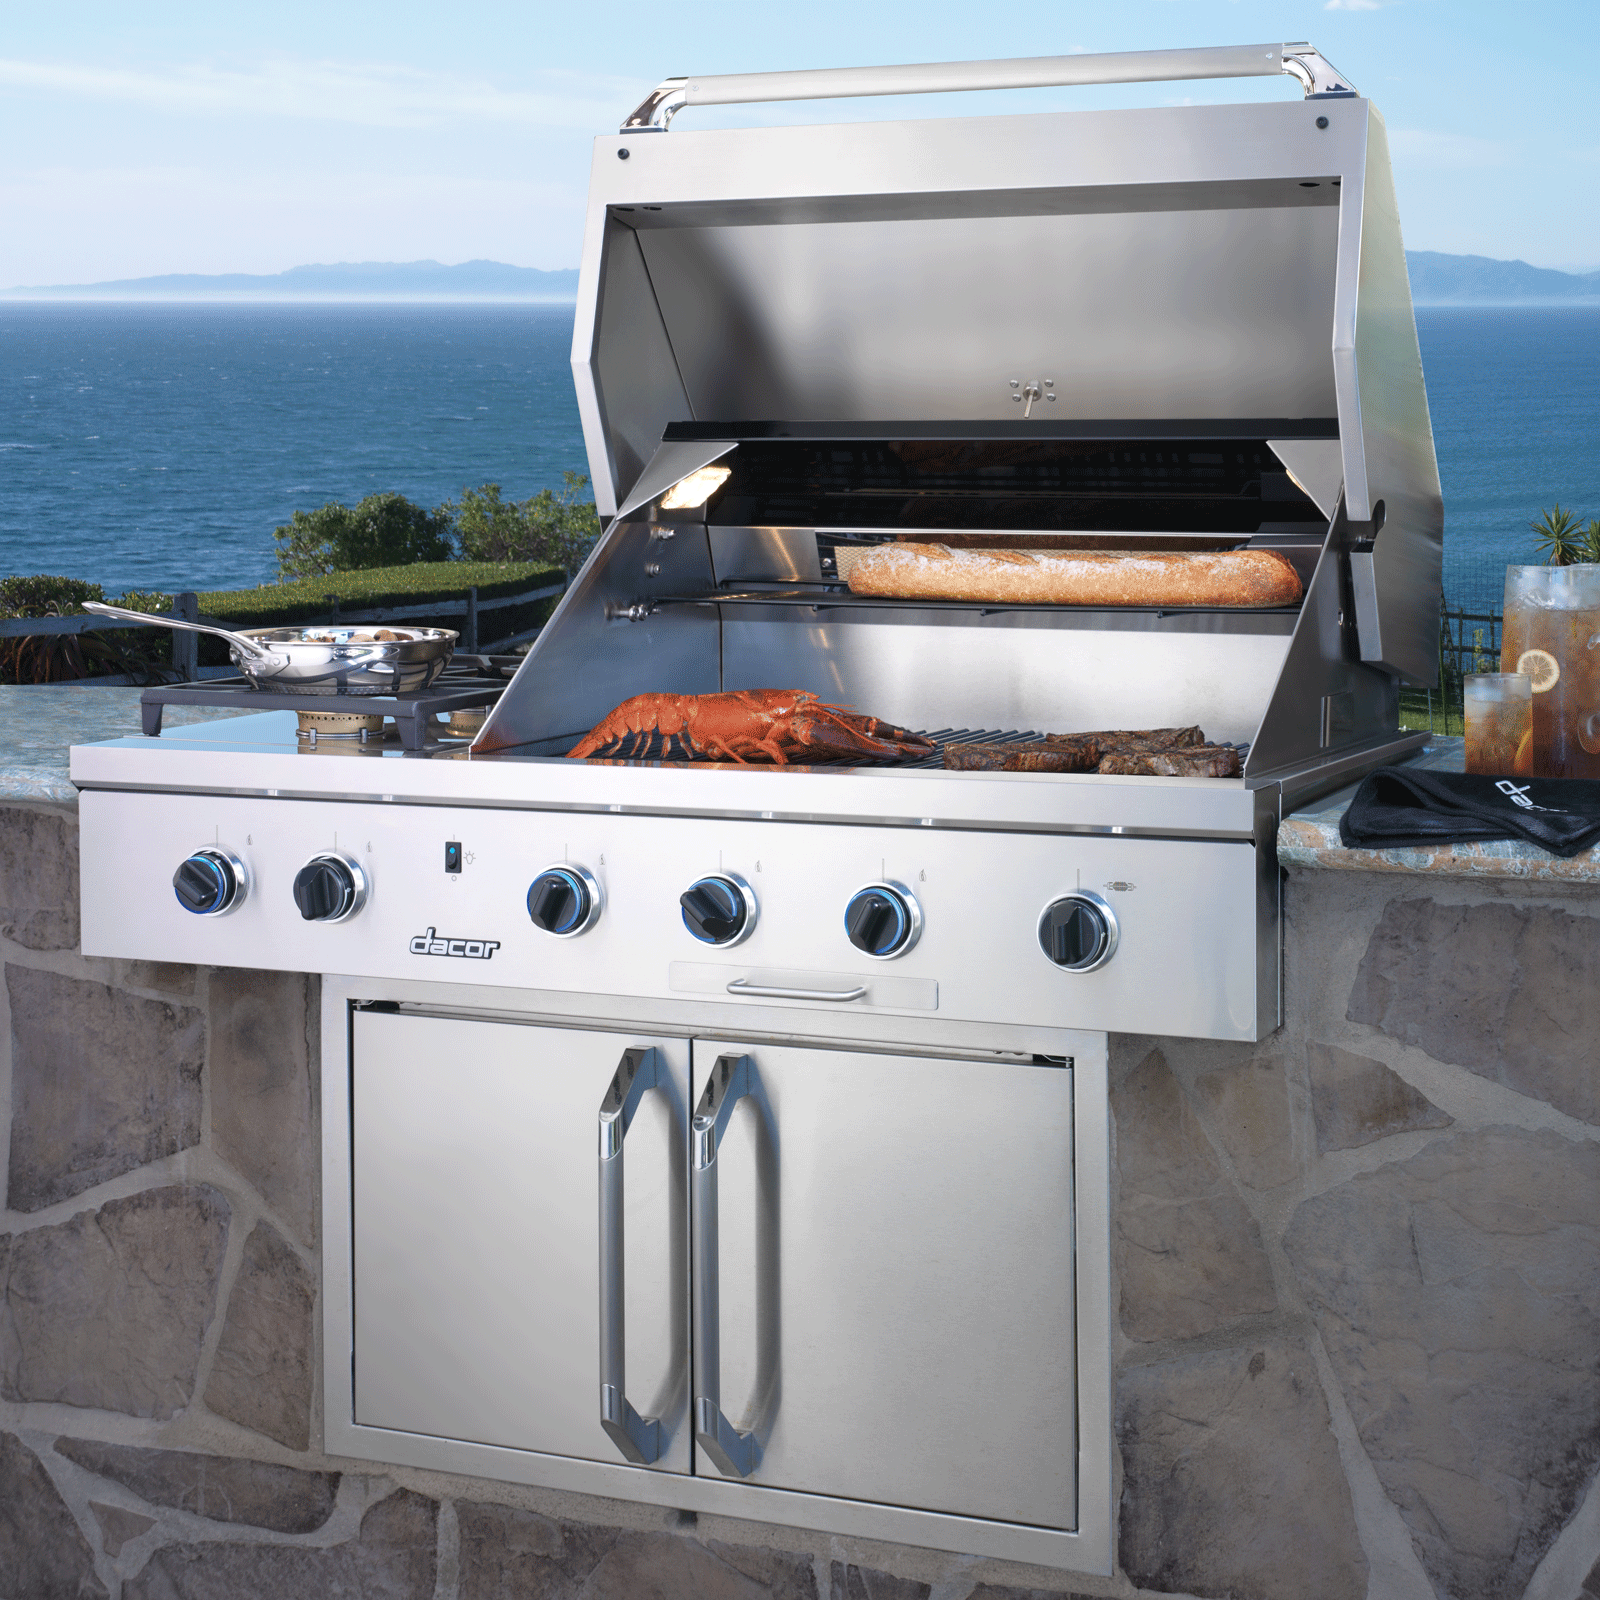 "Dacor Heritage 36"" Outdoor Grill, in Stainless Steel with Chrome Trim, for use with Liquid Propane"